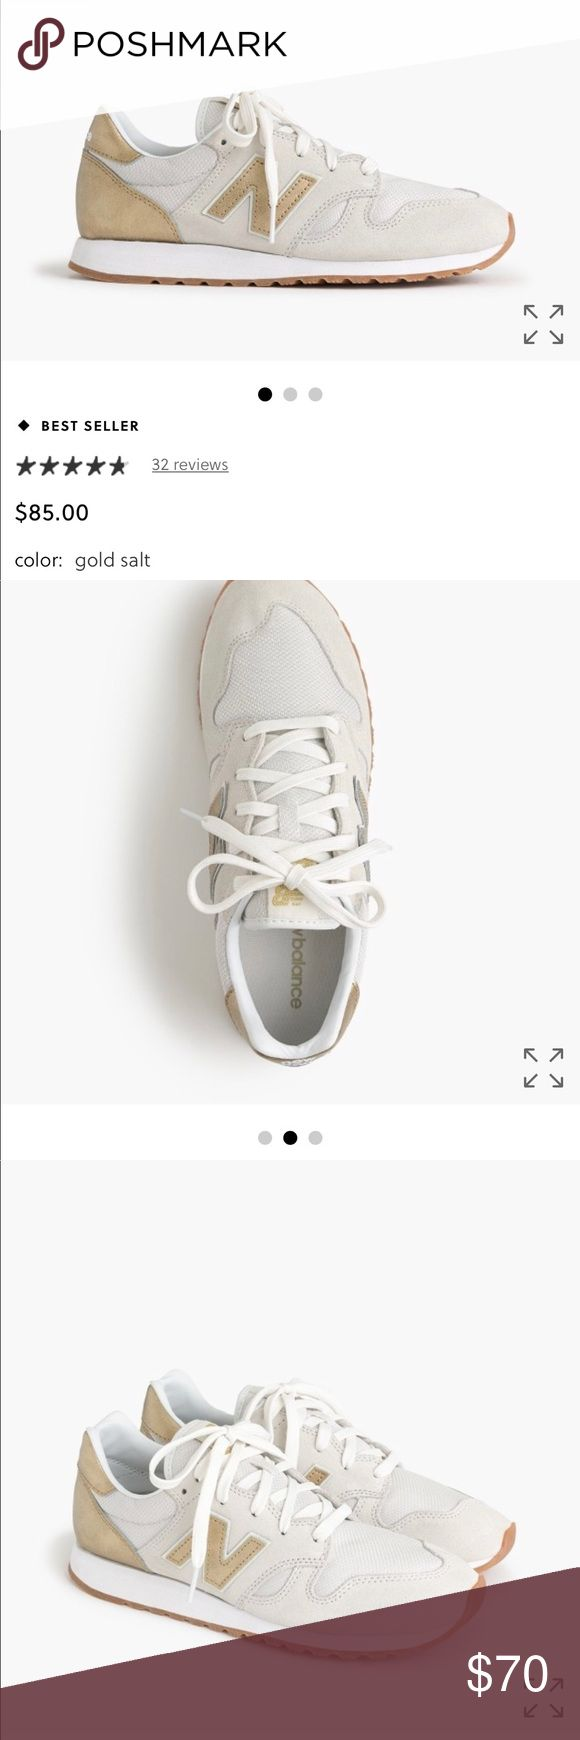 New Balance for J. Crew sneakers Brand new Size 8 sneakers. Retail for $85 at the store and online. New Balance Shoes Sneakers